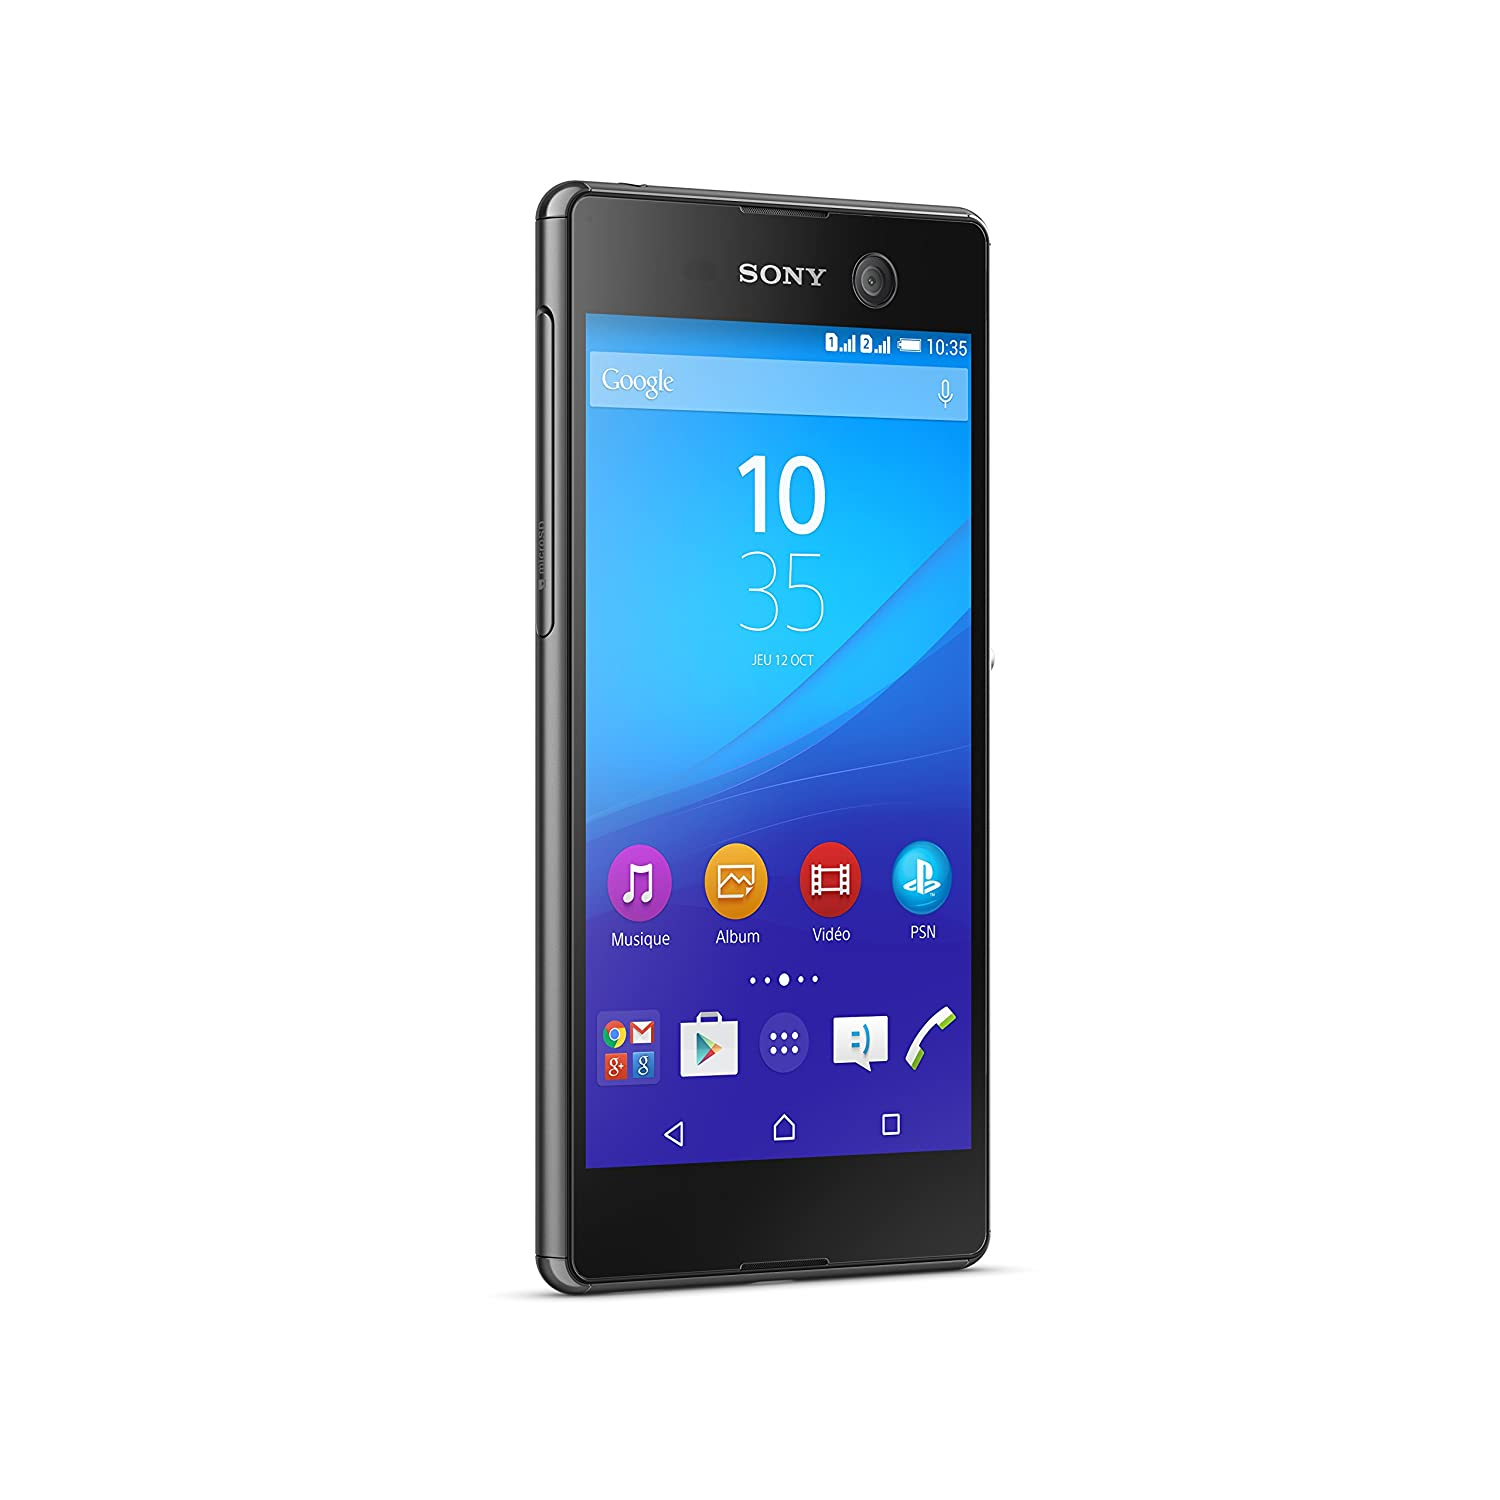 Sony Xperia Mobile M5 - Smartphone Libre Android (4G, 5